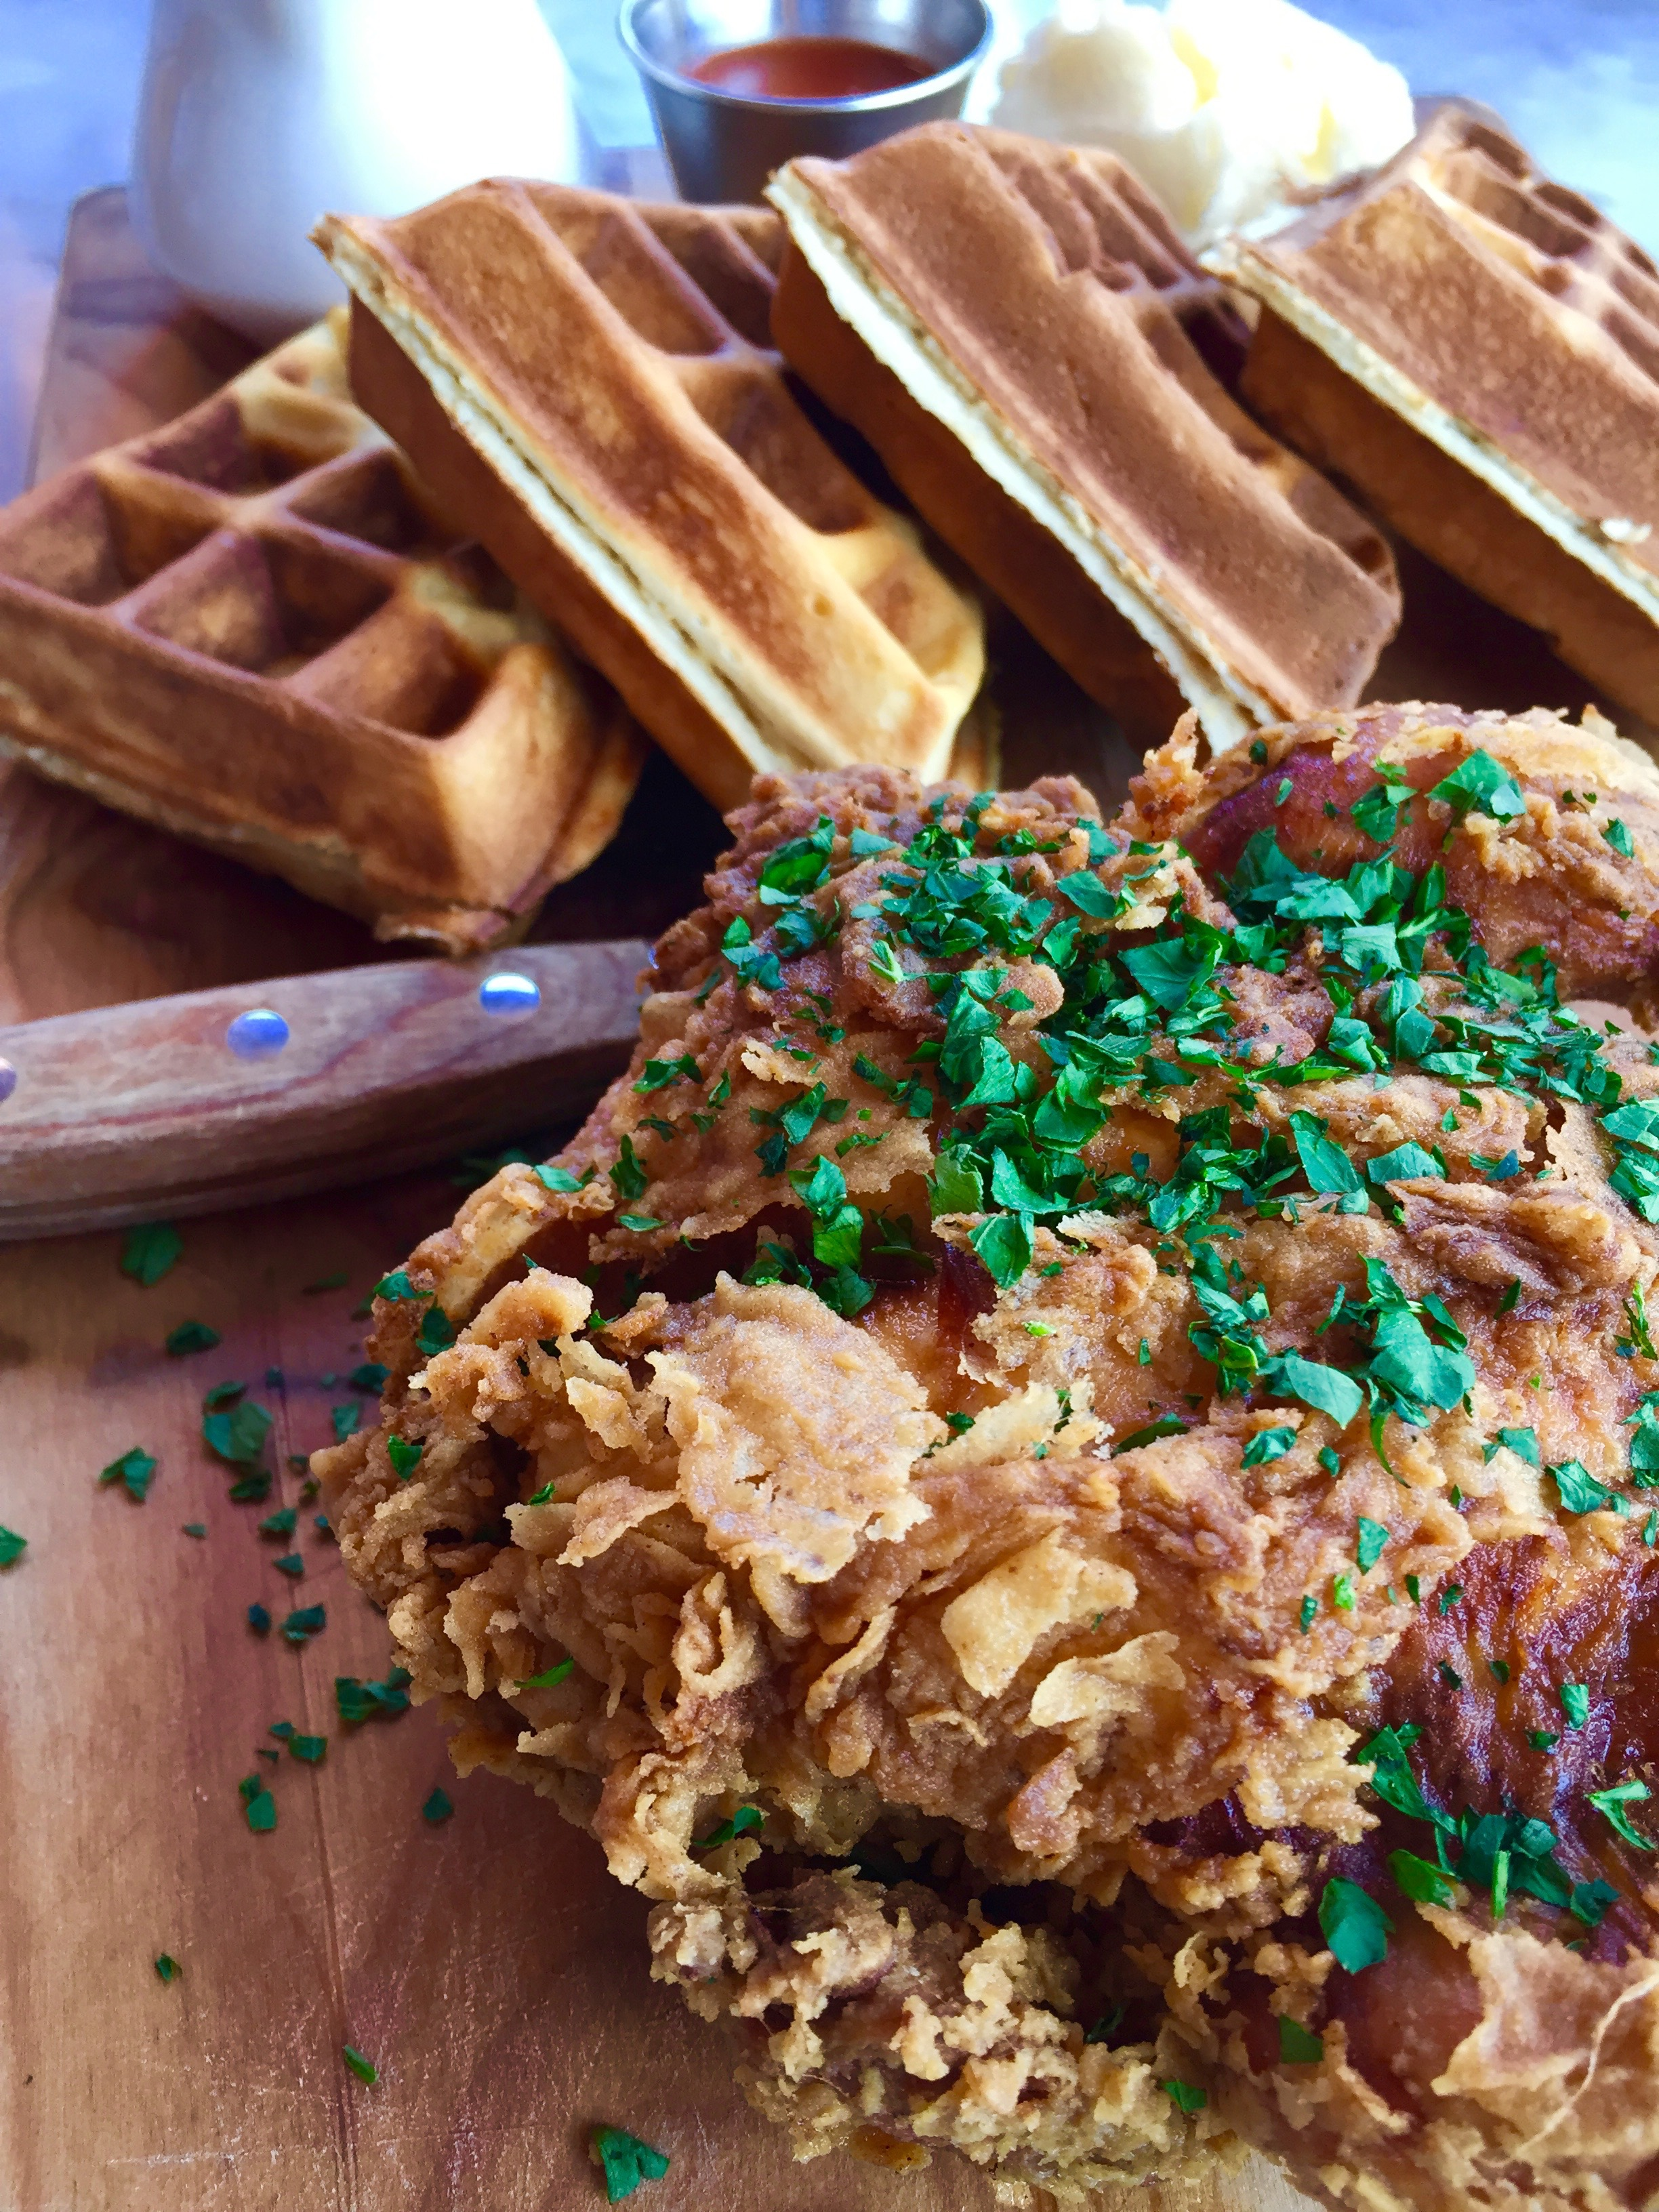 Fried chicken and waffle with maple syrup.